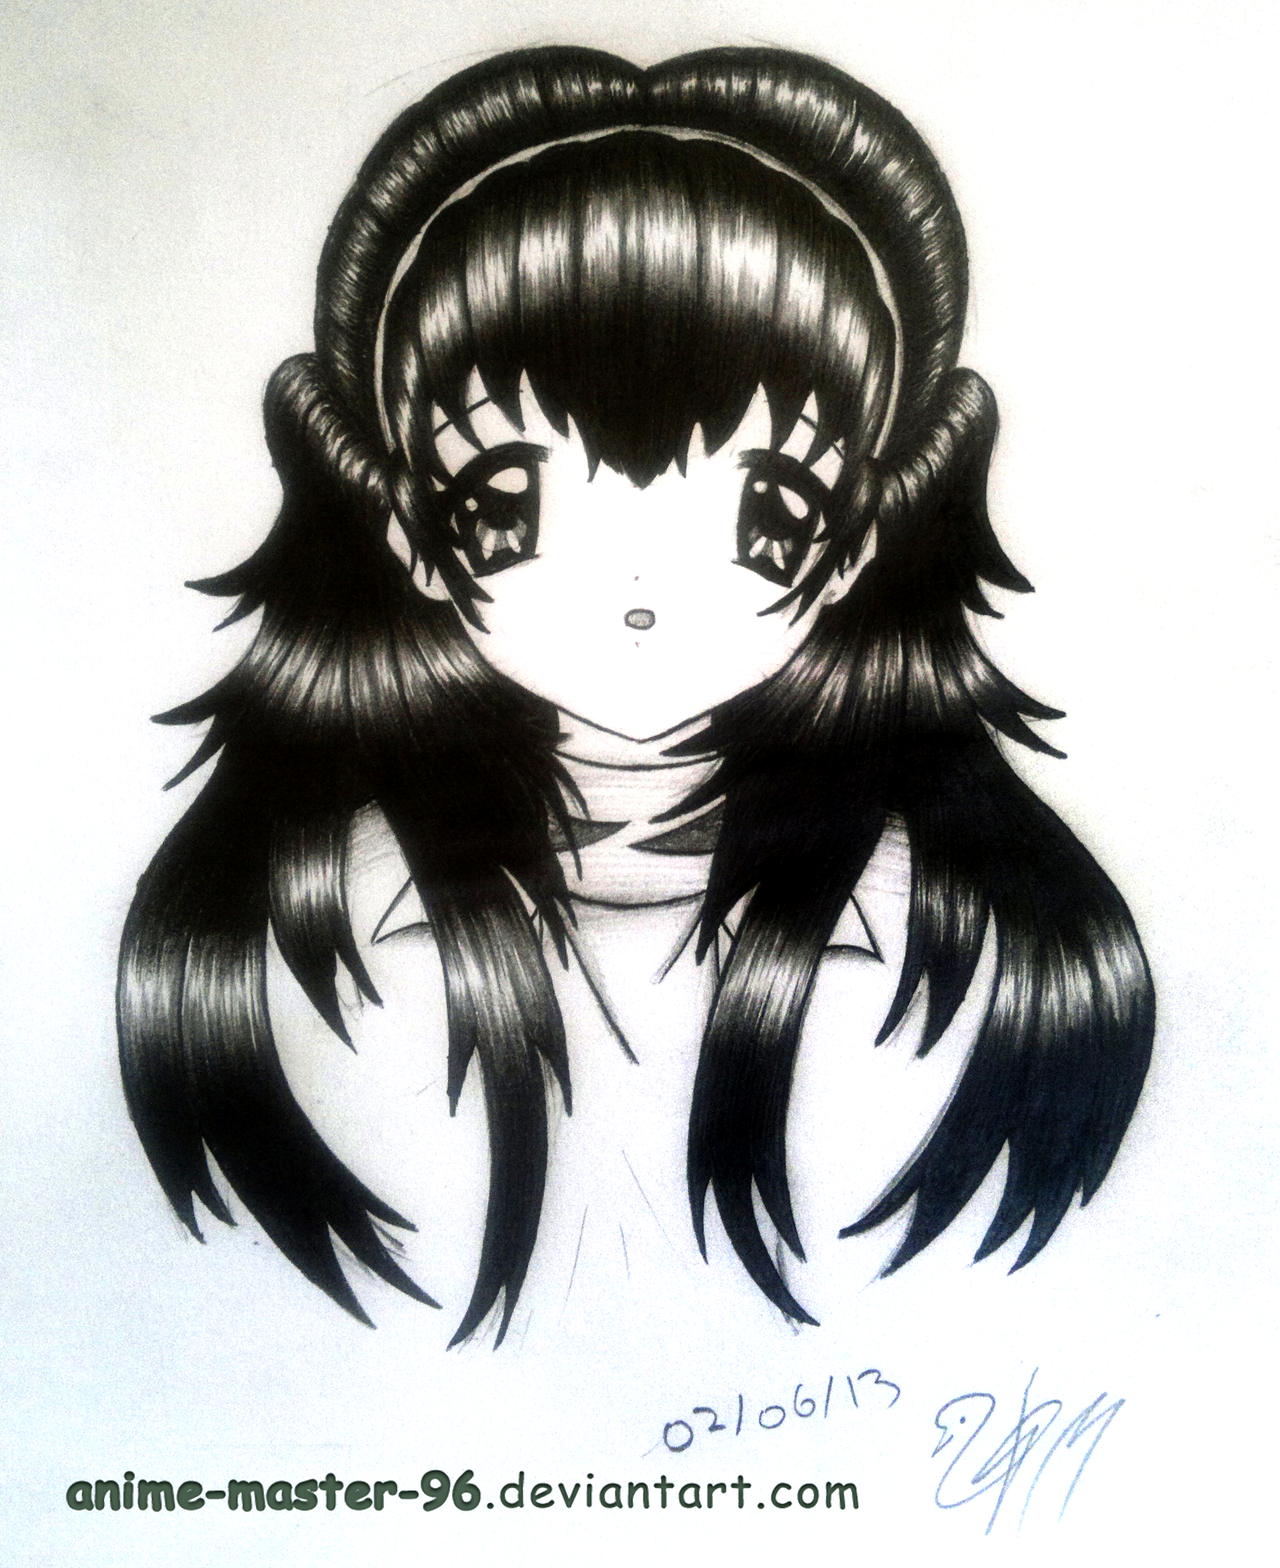 Hair Study From The Imagination 2 Front View By Anime Master 96